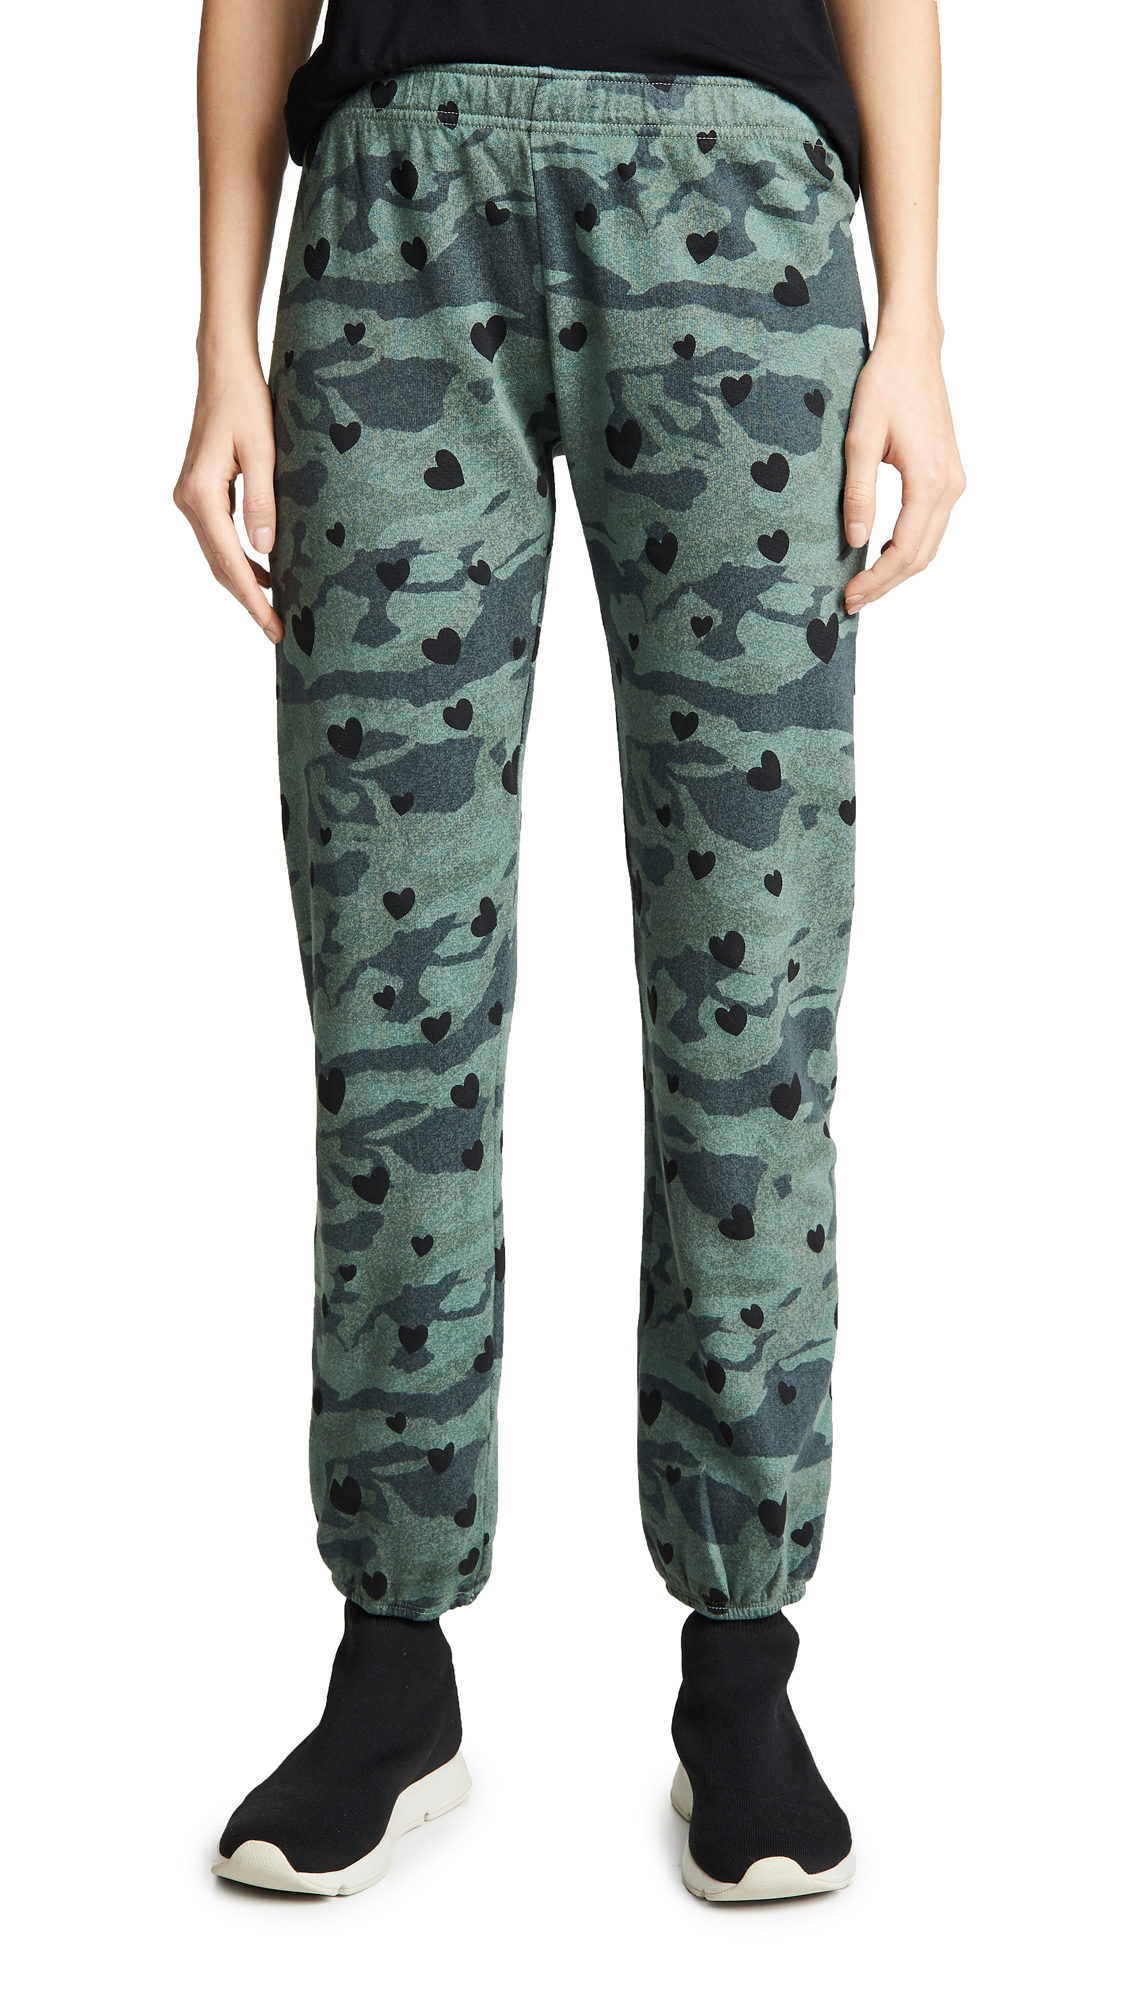 Camo Sweats With Hearts in Cactus